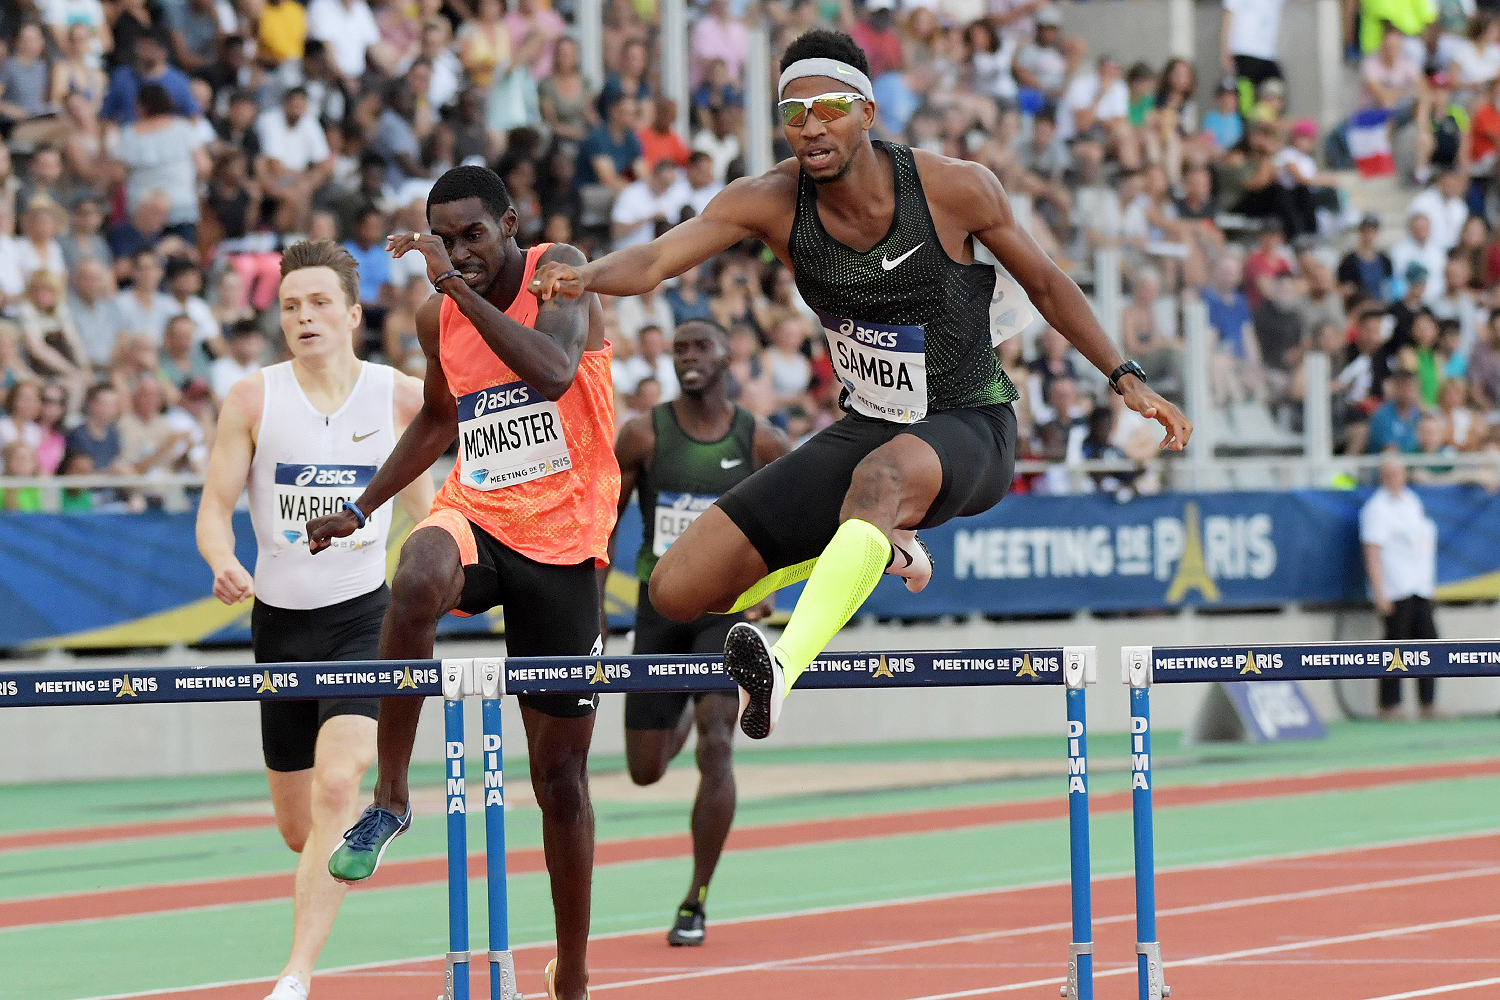 Abderrahman Samba en route to his historic 46.98 run in the 400m hurdles at the IAAF Diamond League meeting in Paris (Kirby Lee)